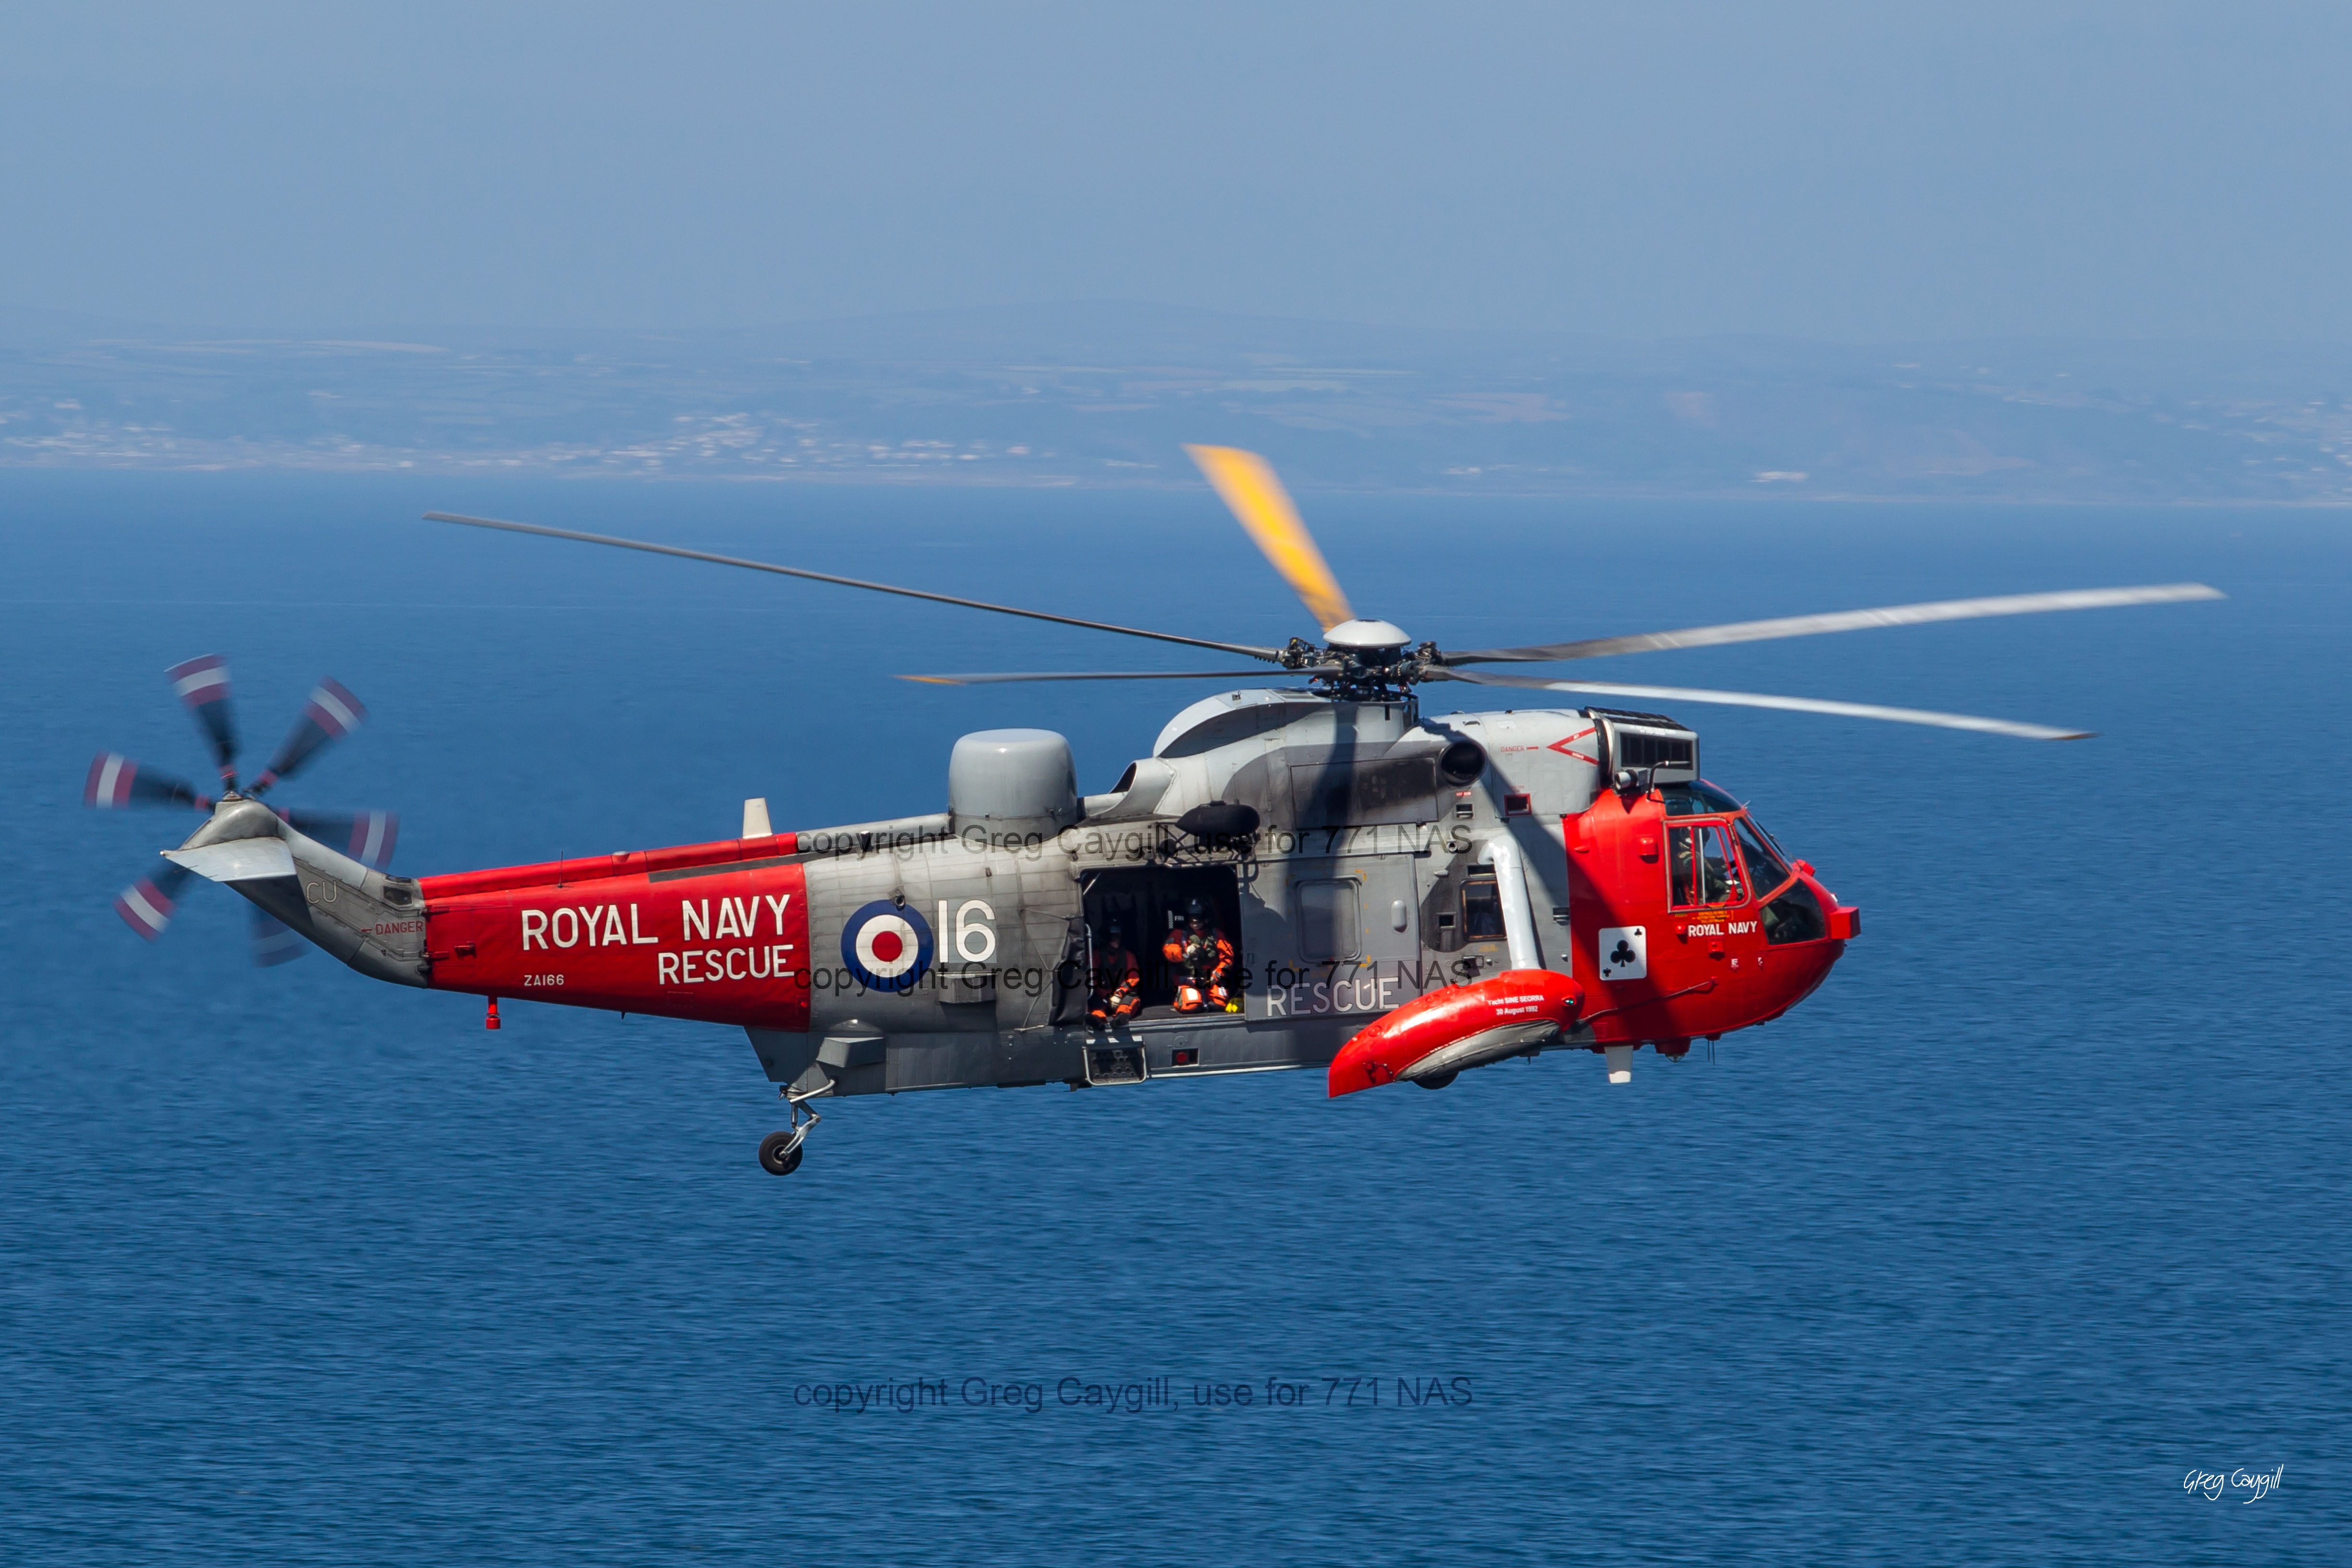 RN 771 Over Cornish Sea July 2015  Hellophotouk